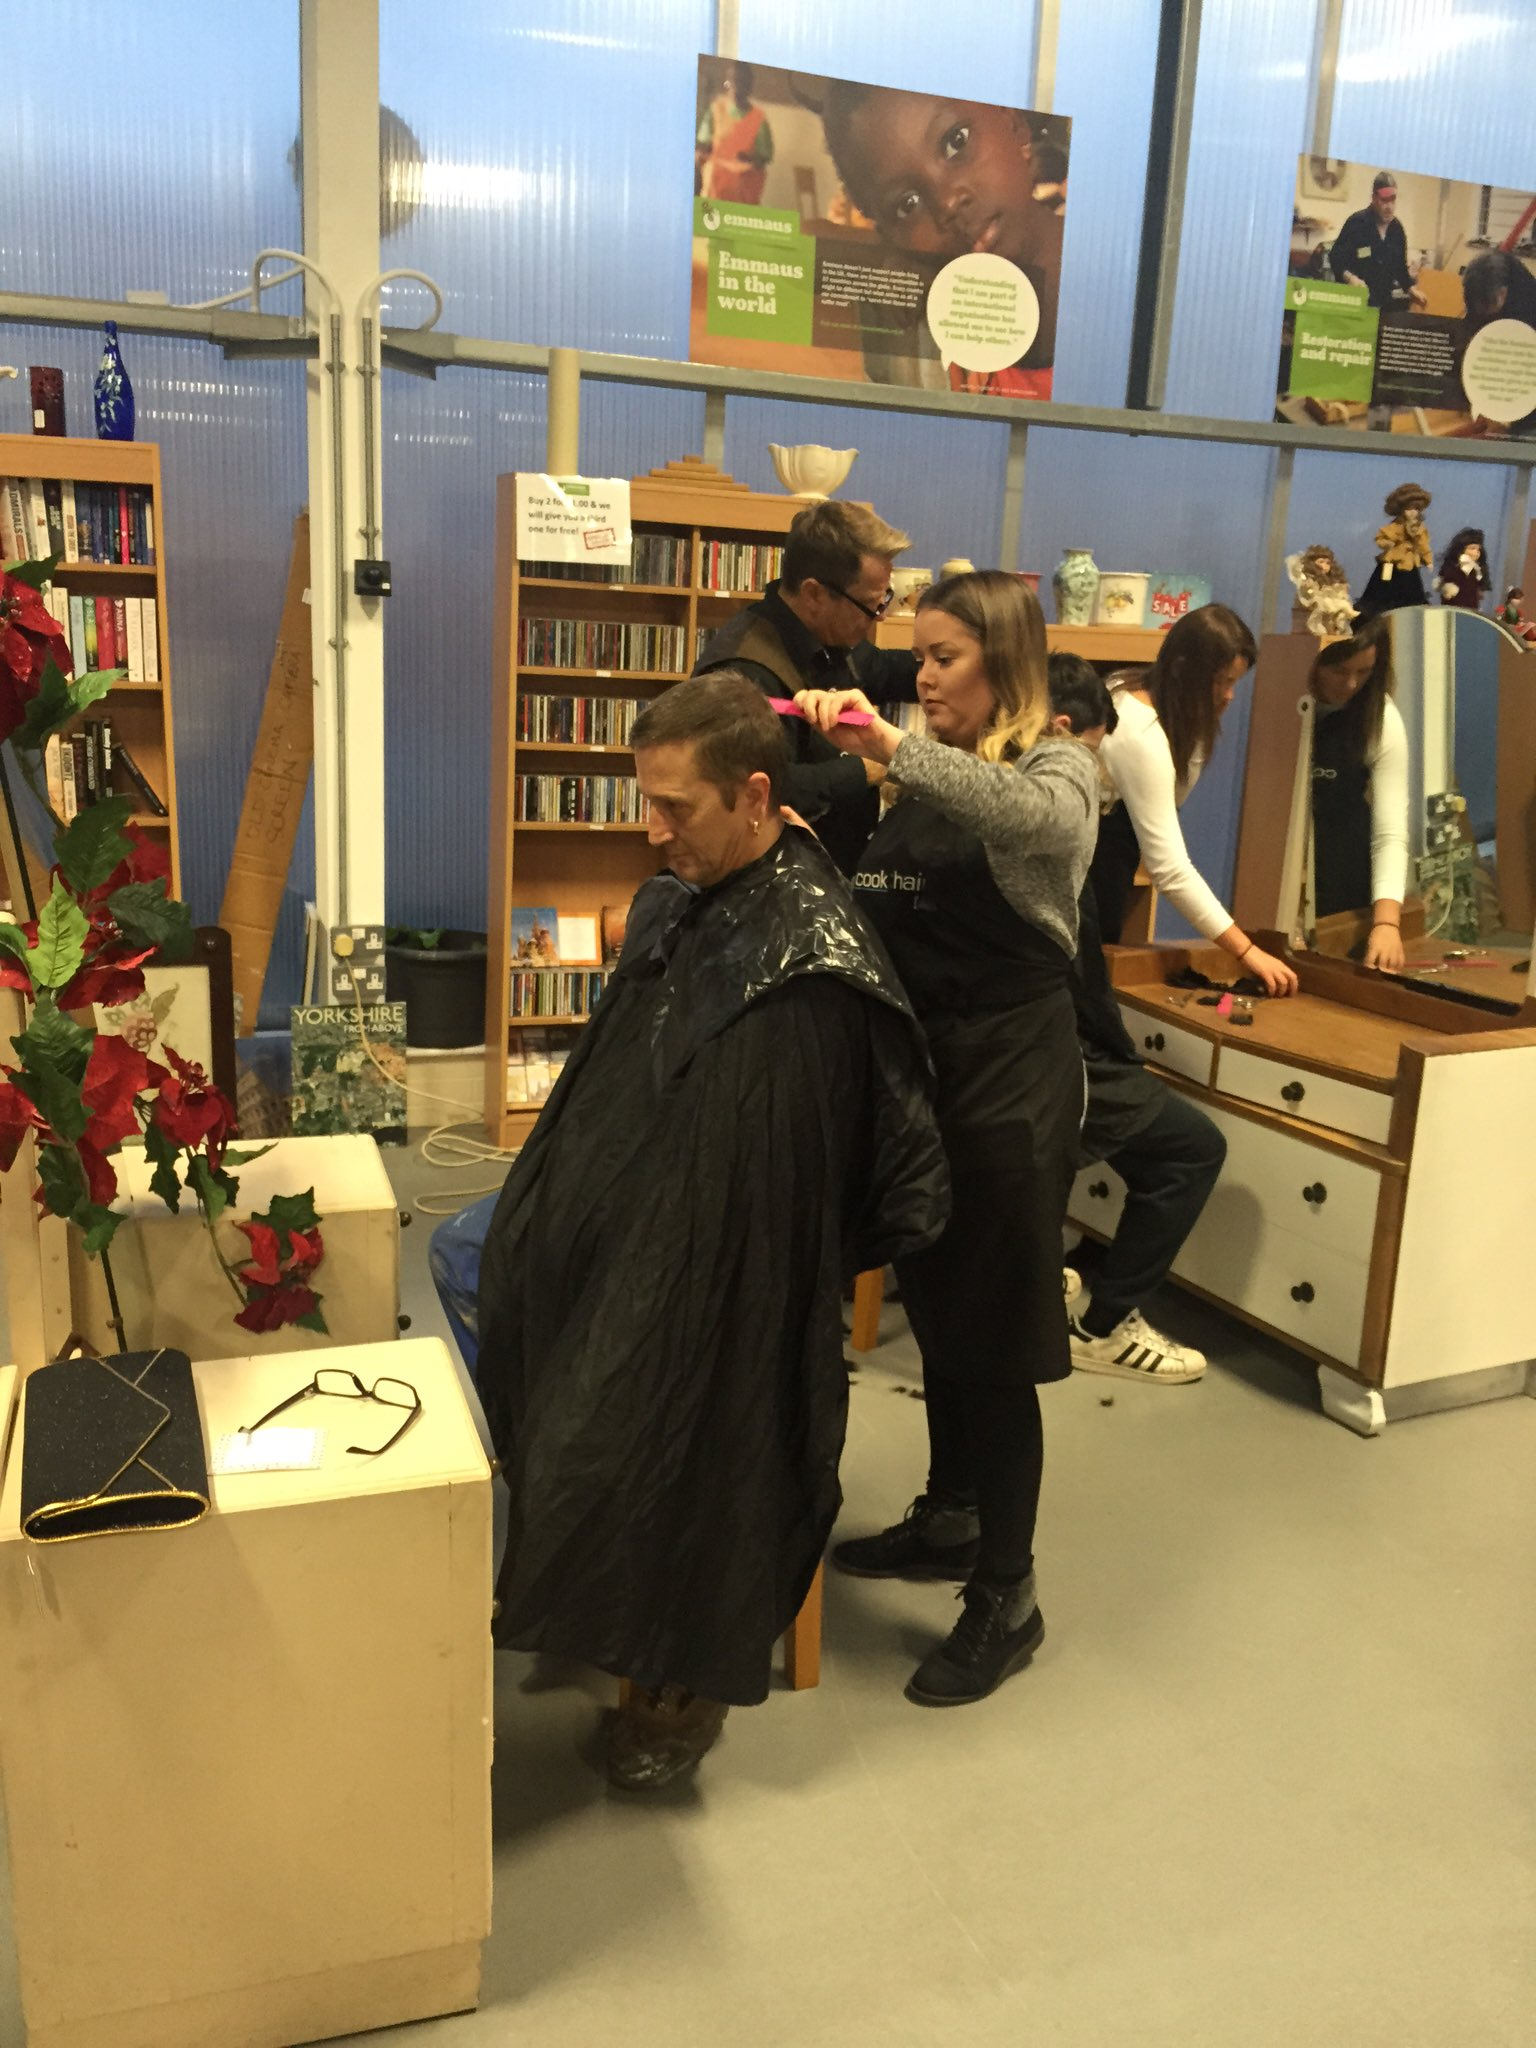 Salon Emmaus 2016 Alistair Cook Cuts Hair For The Homeless For Christmas Emmaus Hull